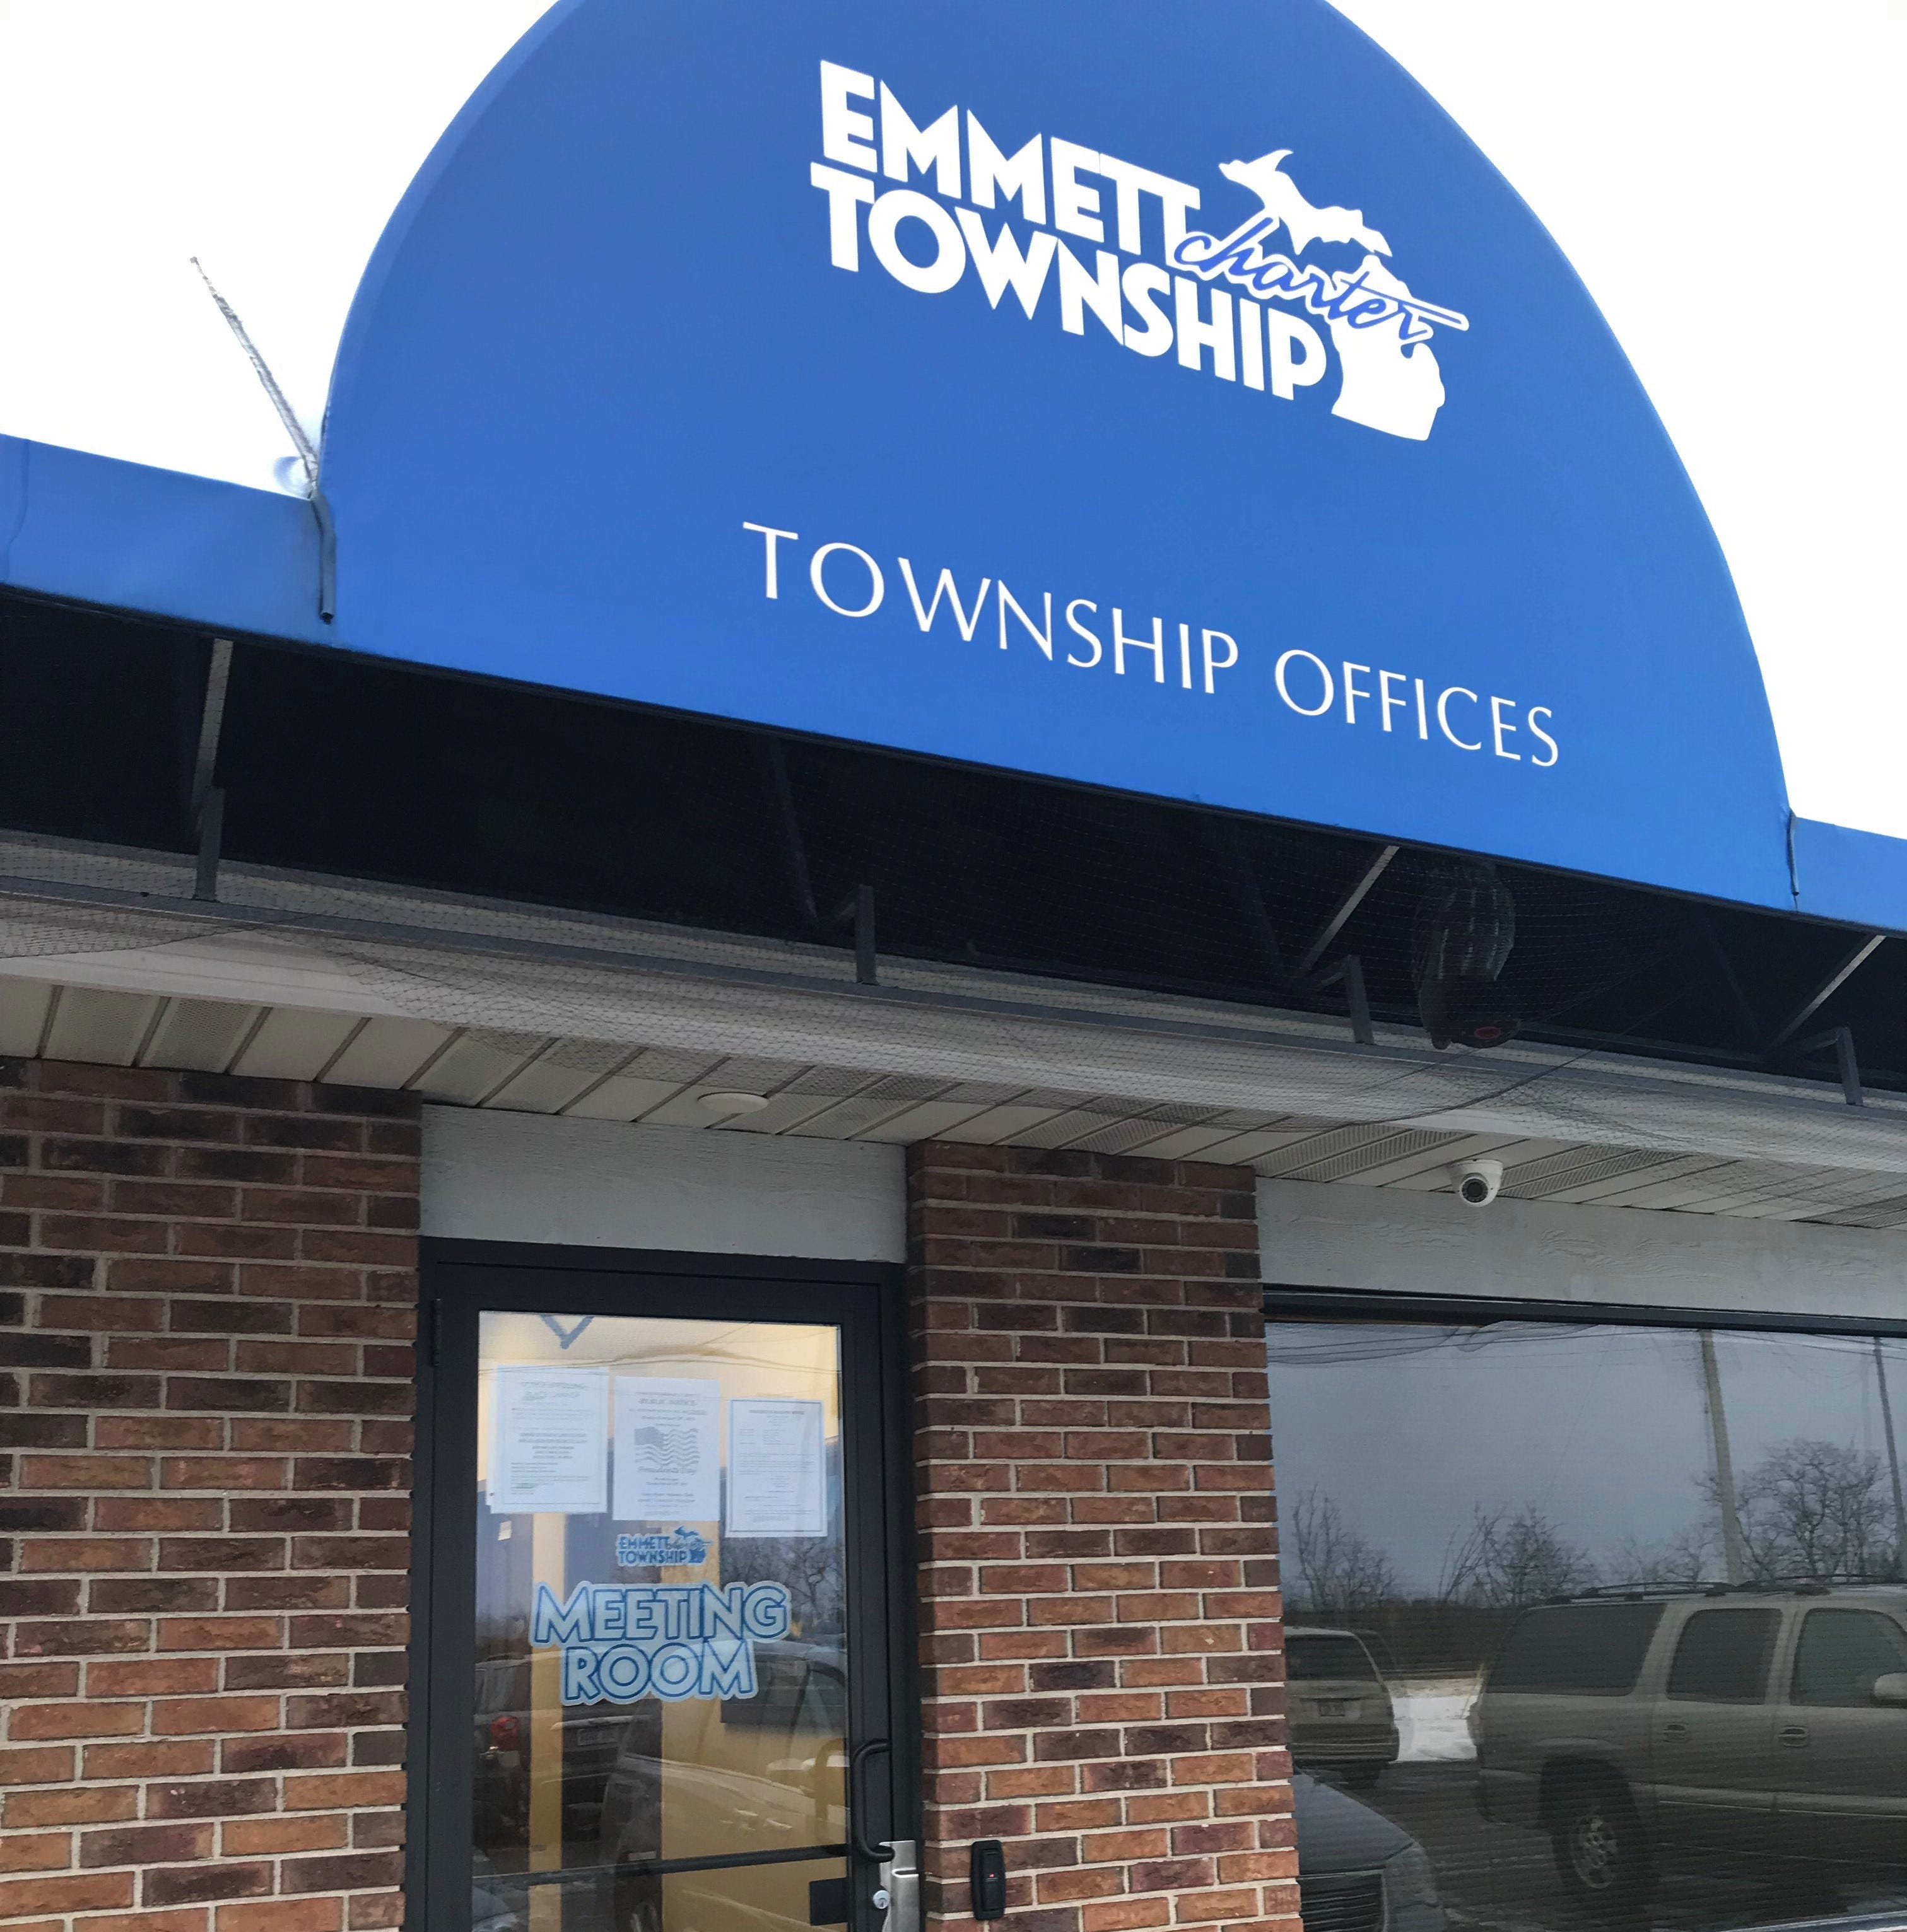 Emmett trustees went against lawyers' advice. Now insurance won't cover legal costs.